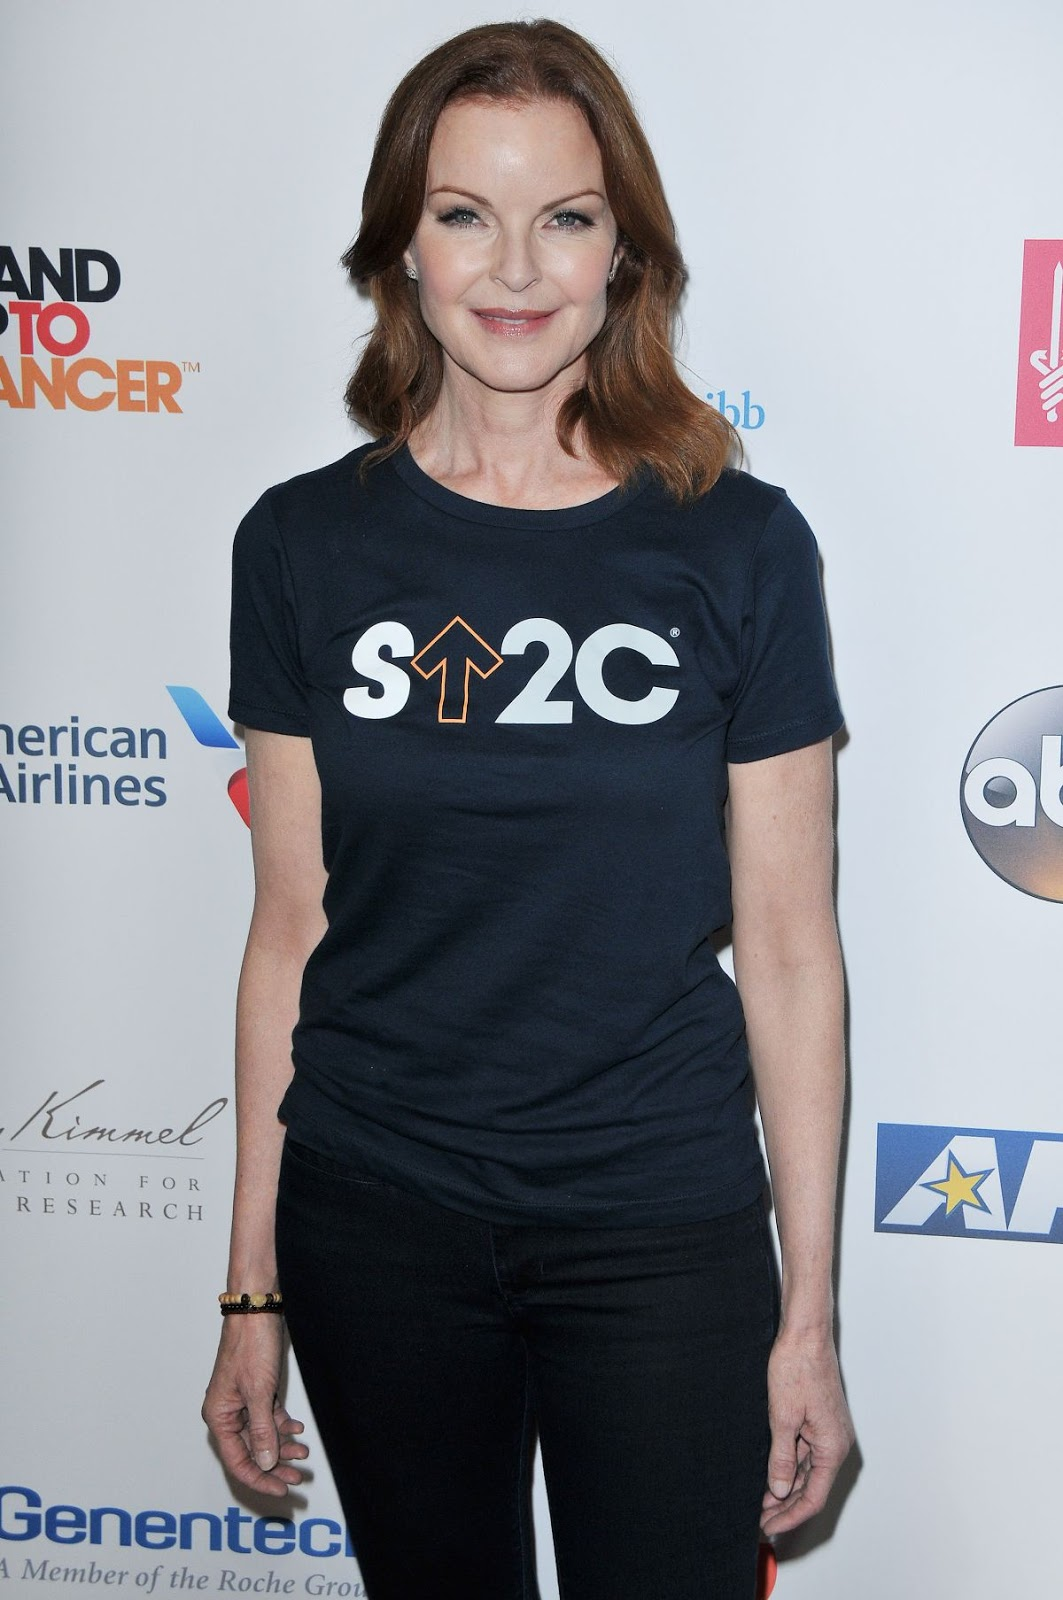 HQ Photos of Marcia Cross At 5th Biennial Stand Up To Cancer In Los Angeles